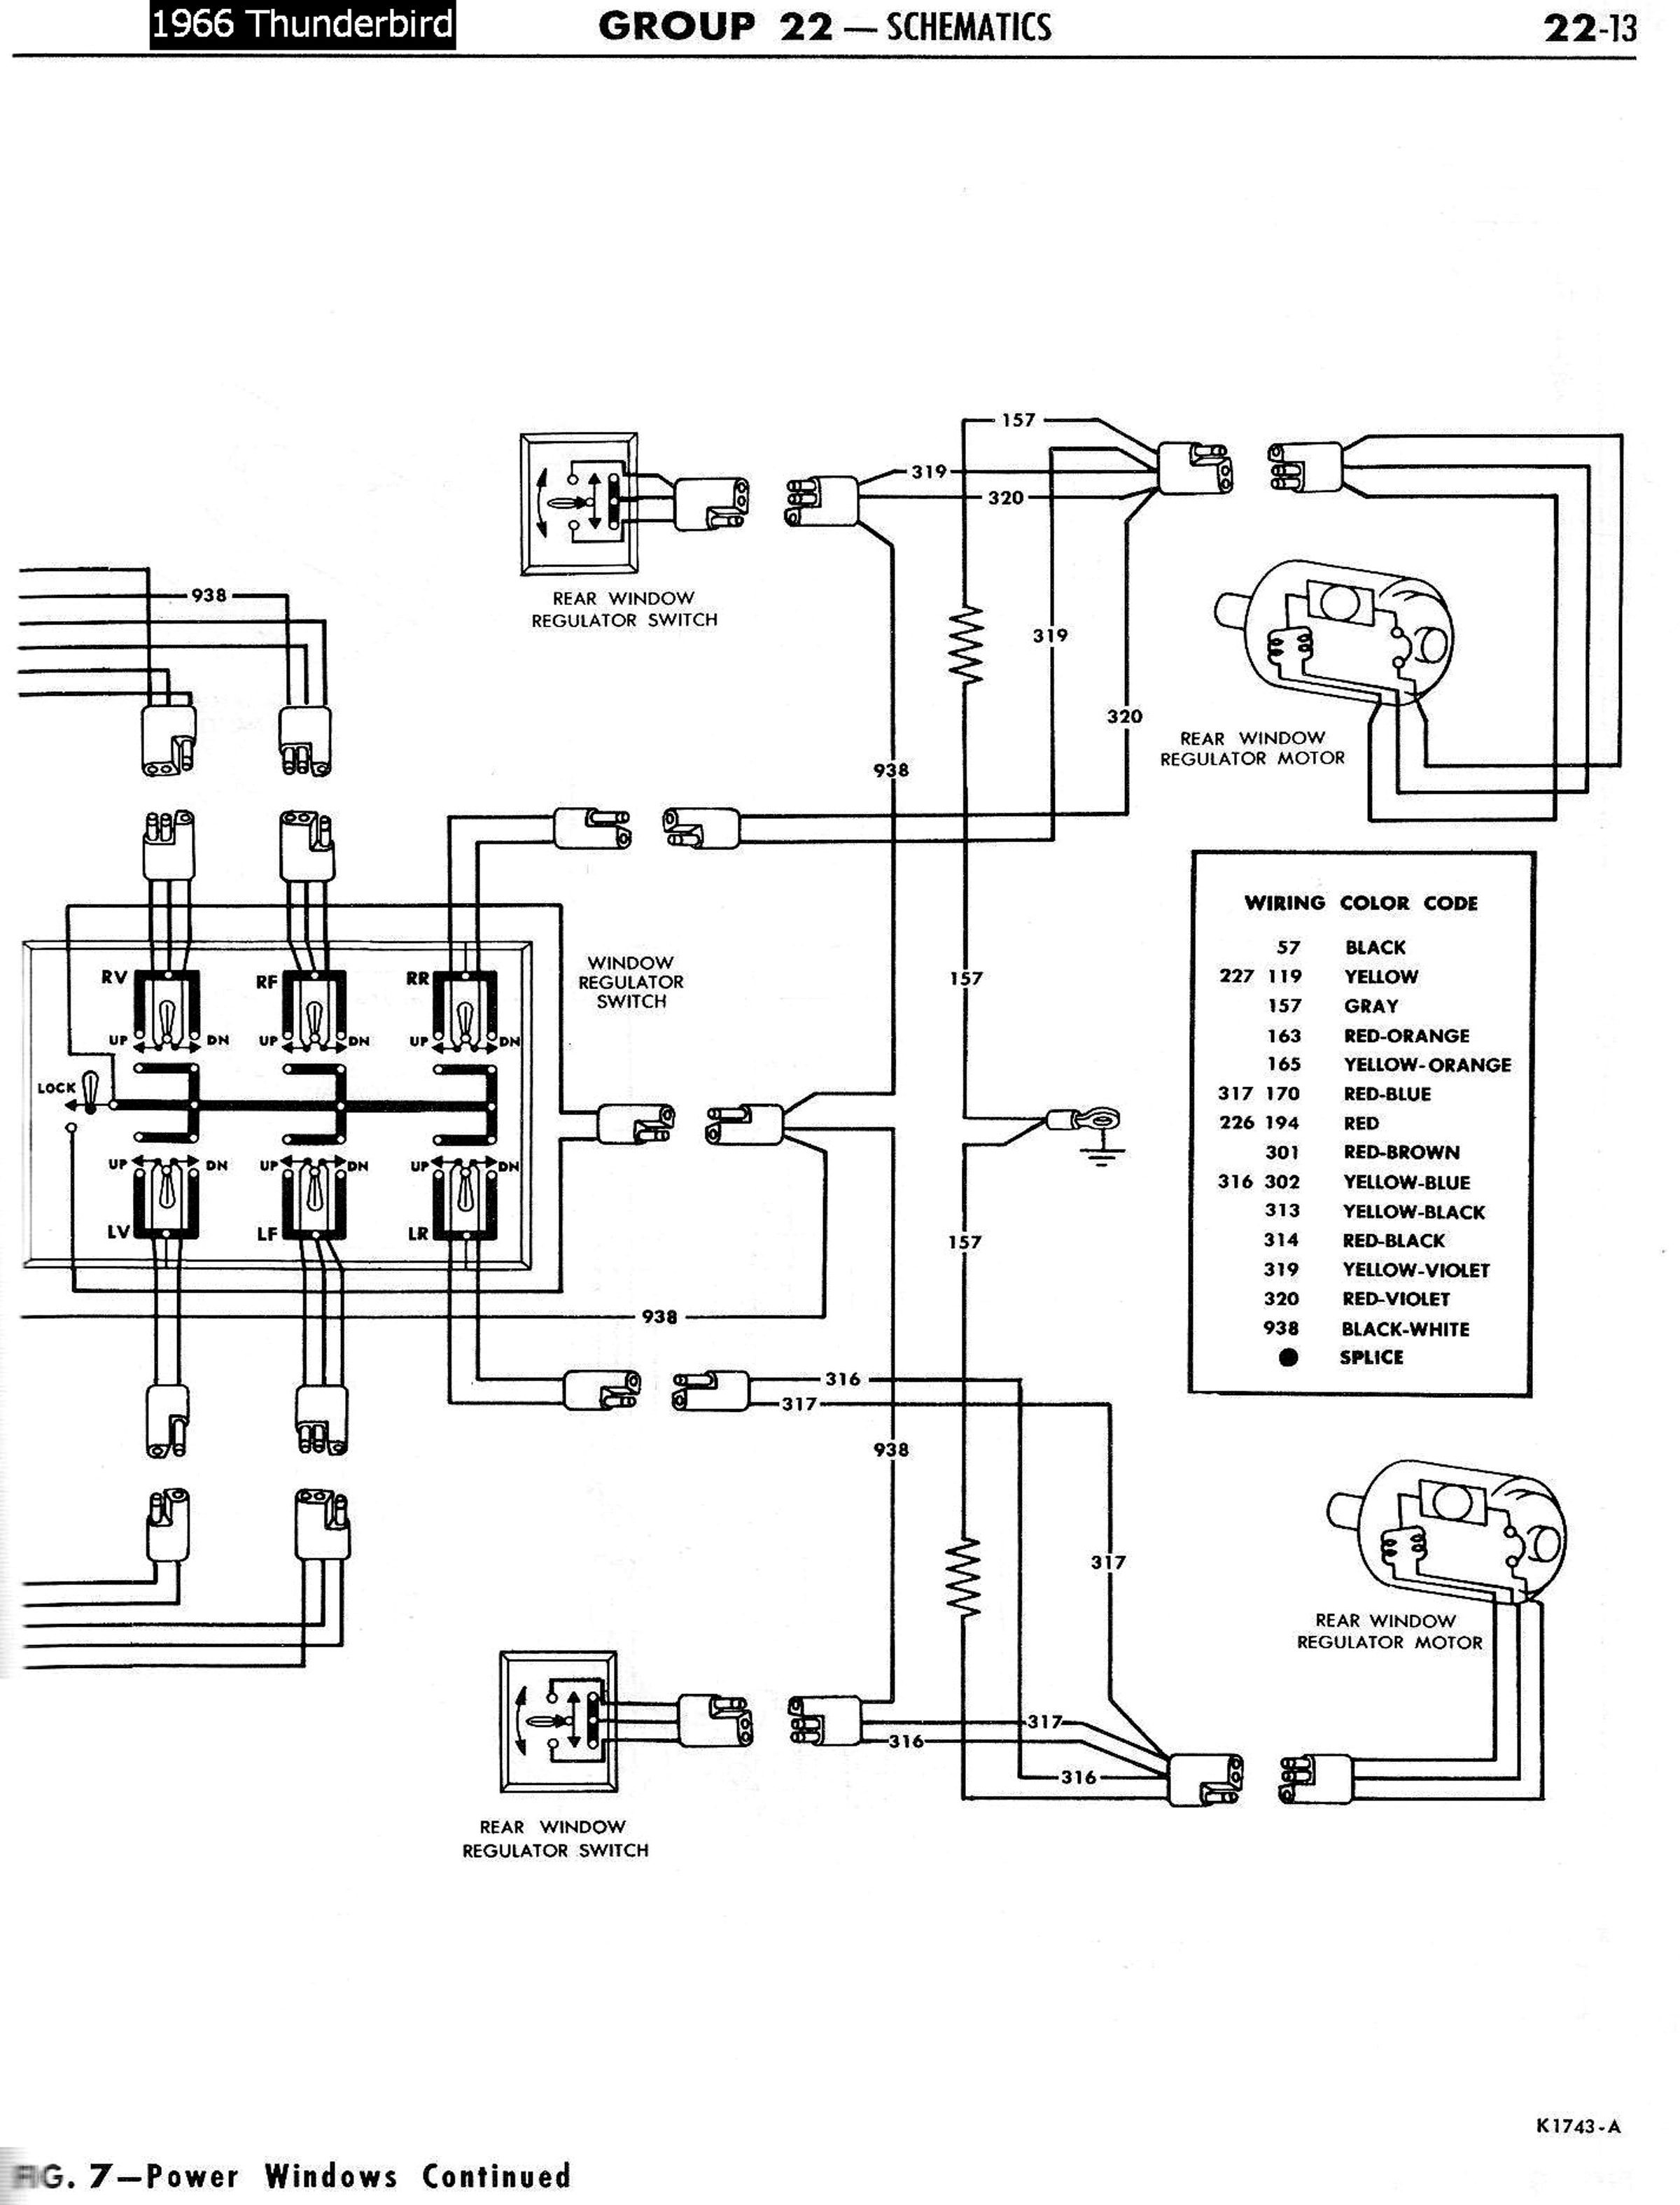 Power Window Wiring Diagram On 55 Chevy Under Dash Wiring